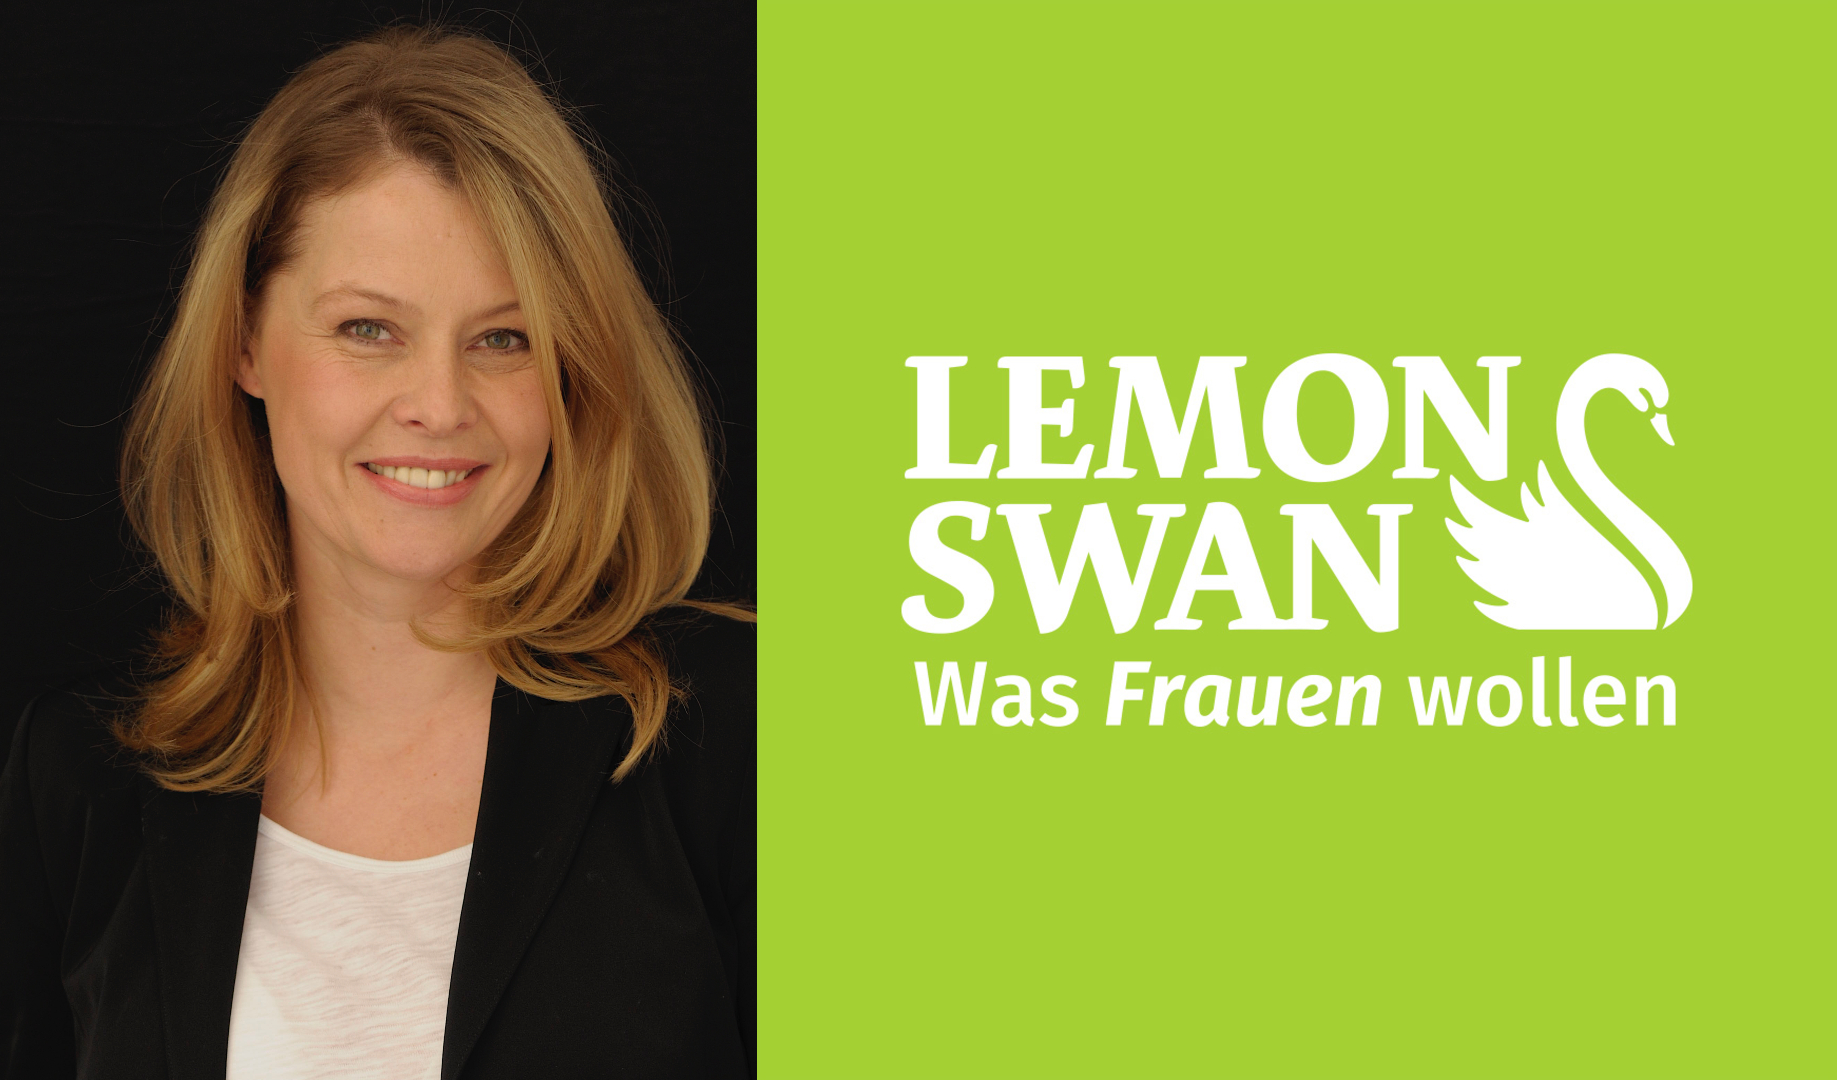 The GDI Podcast: German Dating Agency LemonSwan Looks After 'What Women Want'